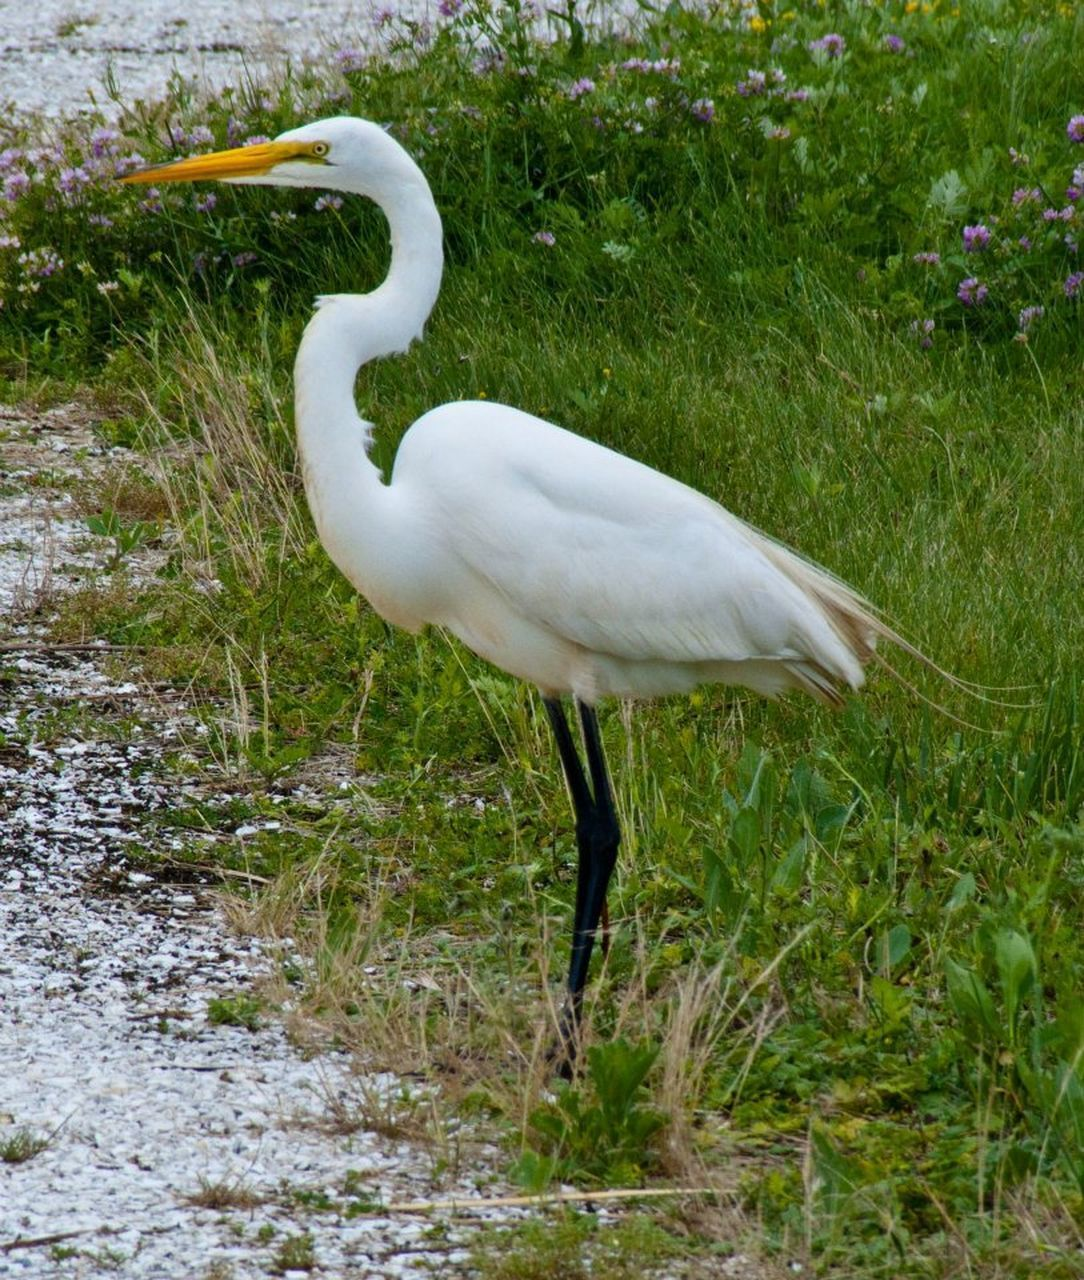 one animal, animals in the wild, animal themes, bird, grass, white color, animal wildlife, day, nature, water, lake, outdoors, great egret, field, plant, no people, standing, beauty in nature, crane - bird